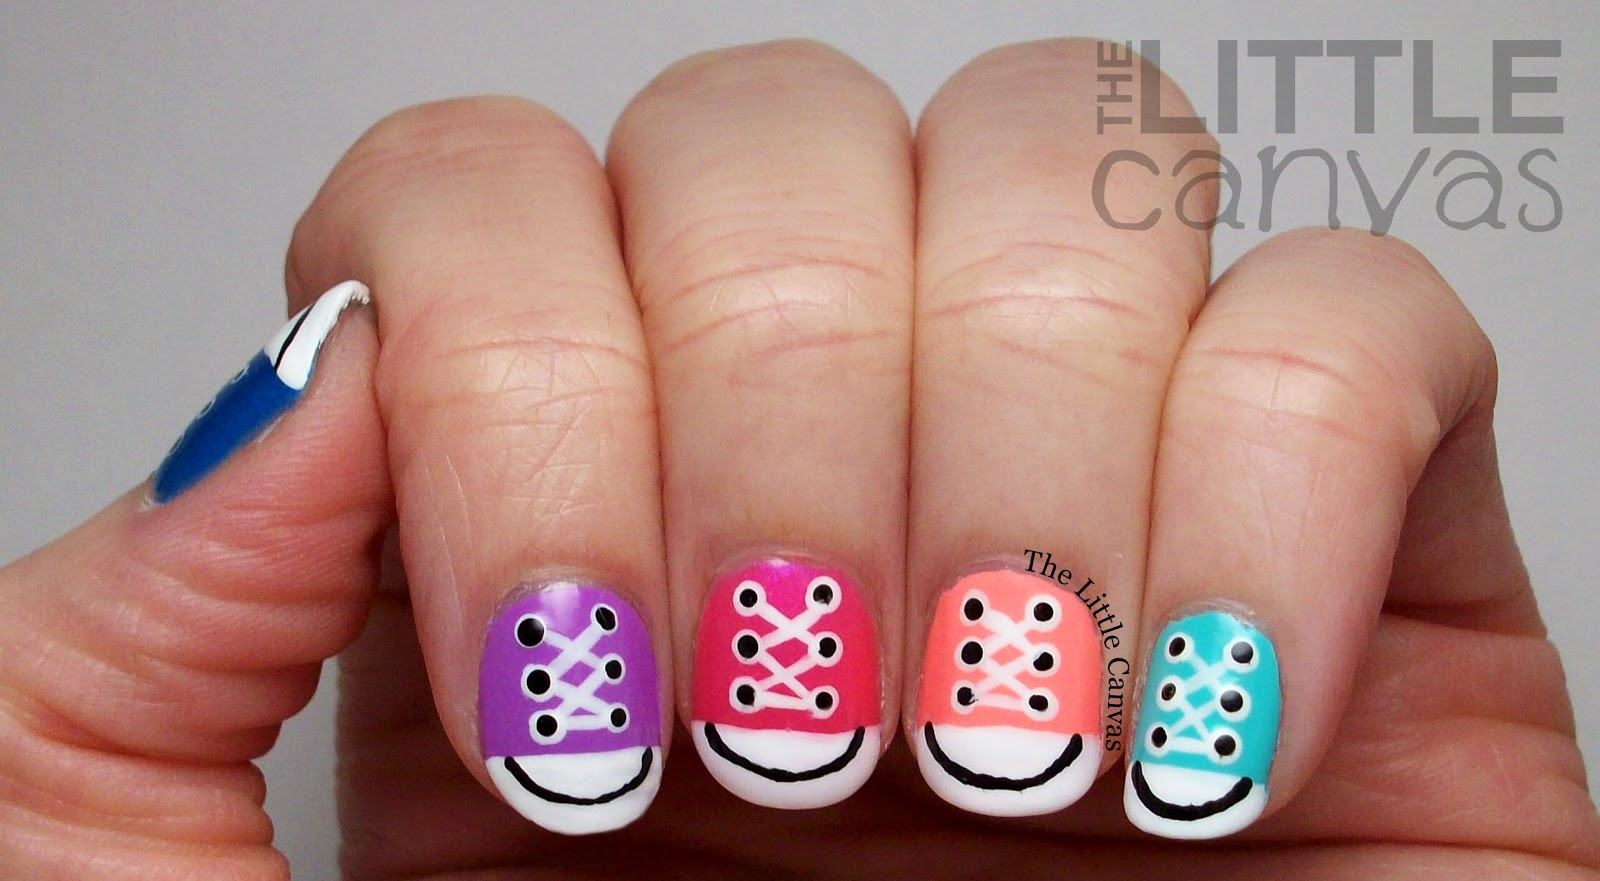 Converse Nail Art Take 2 + Tutorial! - The Little Canvas